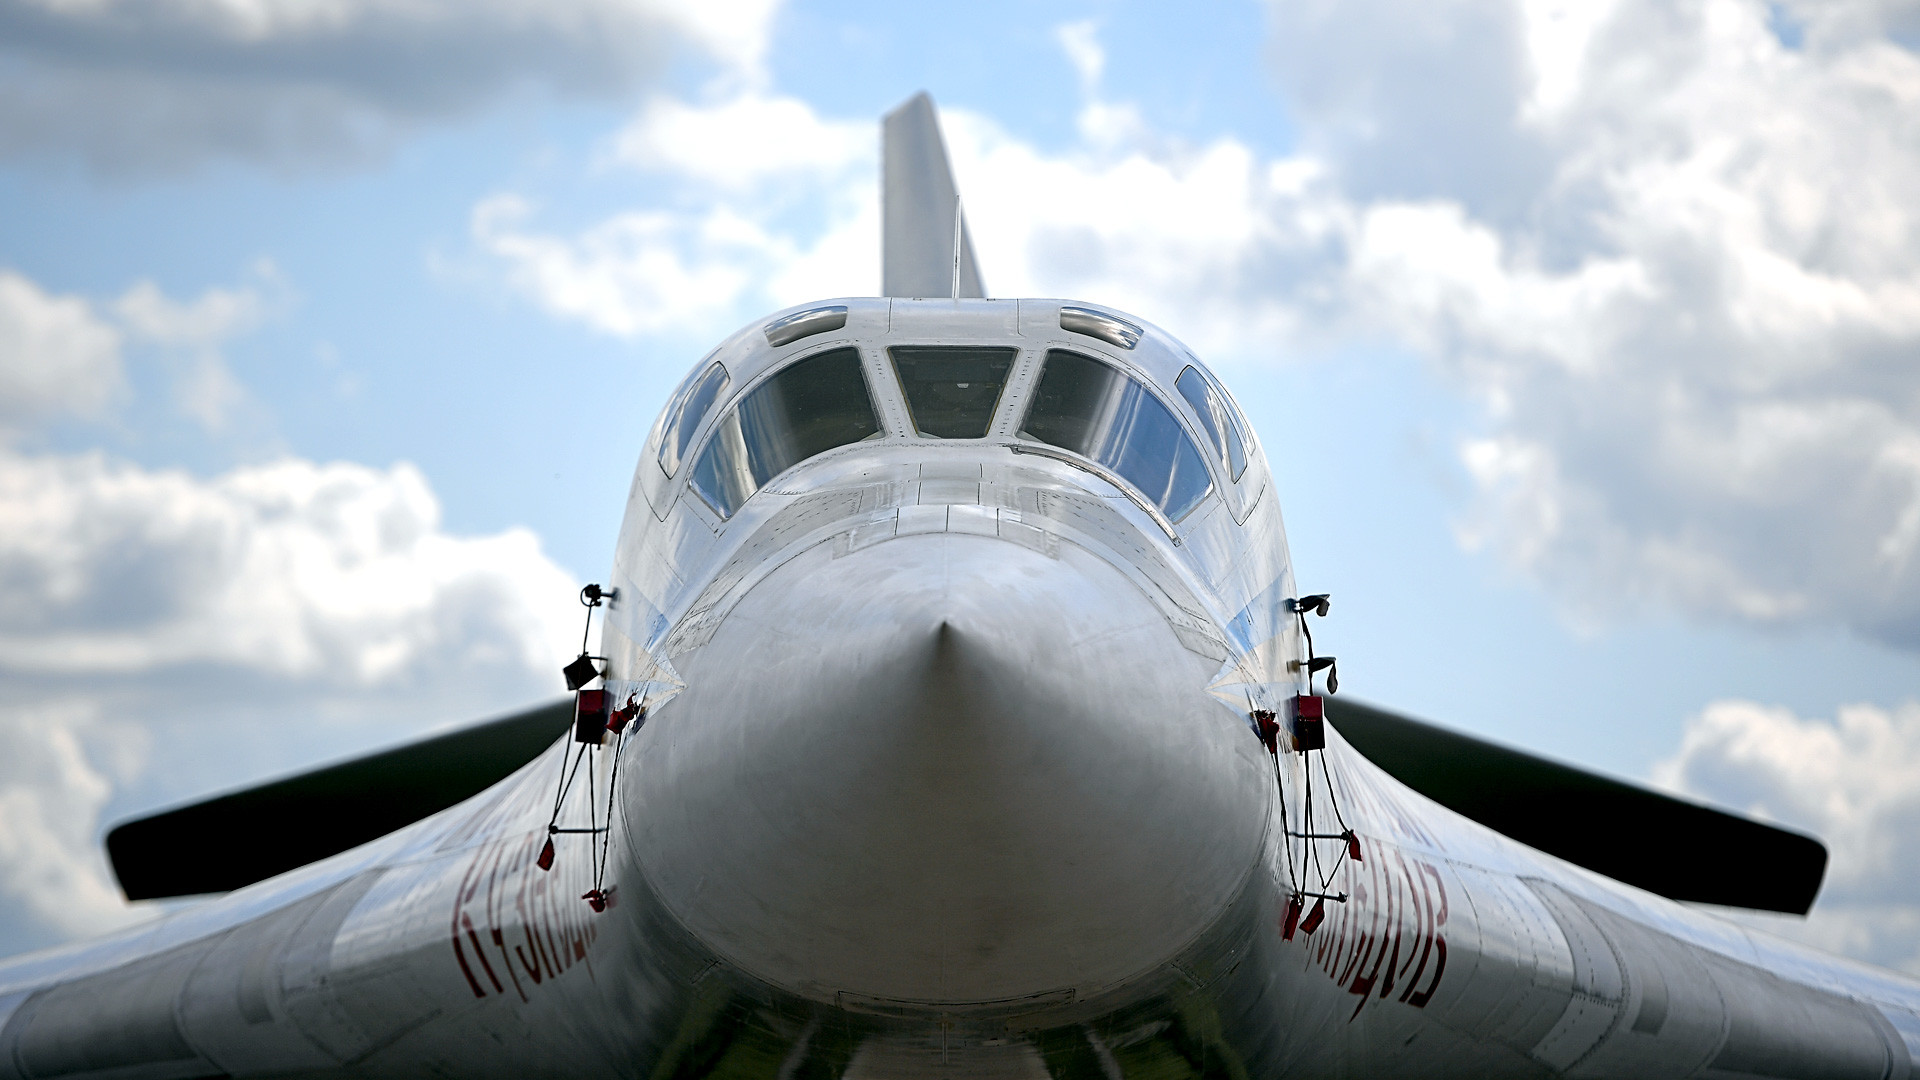 Tupolev Tu-160 supersonic heavy strategic bomber at the International Aviation and Space Salon MAKS-2017 in Zhukovsky.